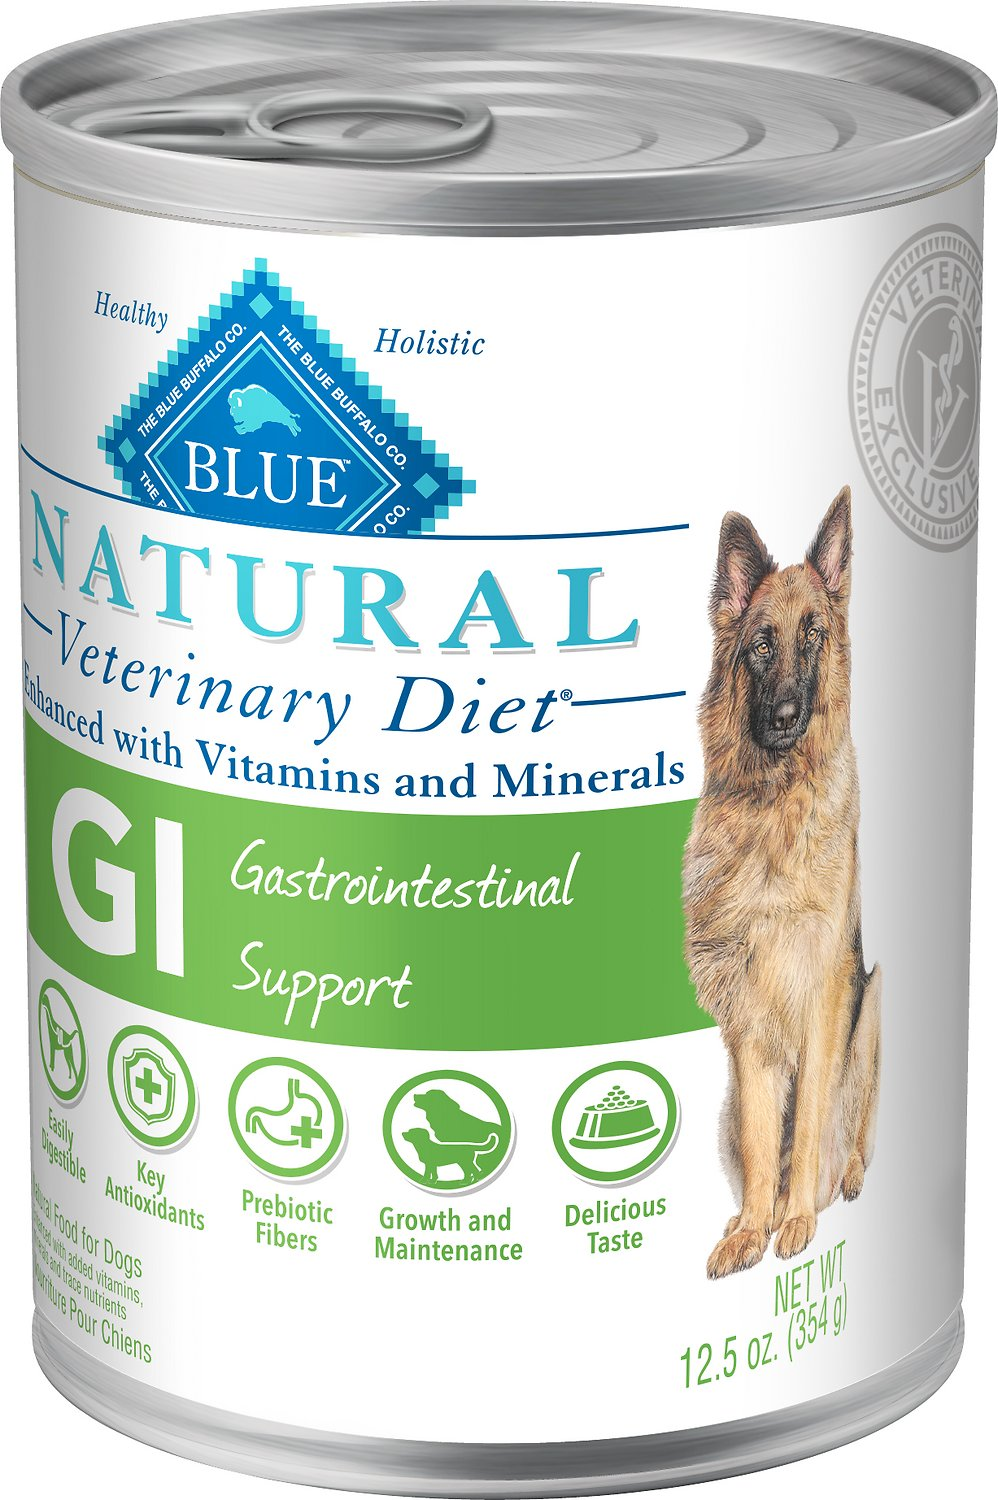 Blue Buffalo Natural Veterinary Diet GI Gastrointestinal Support Canned Dog Food, 12.5-oz, case of 12